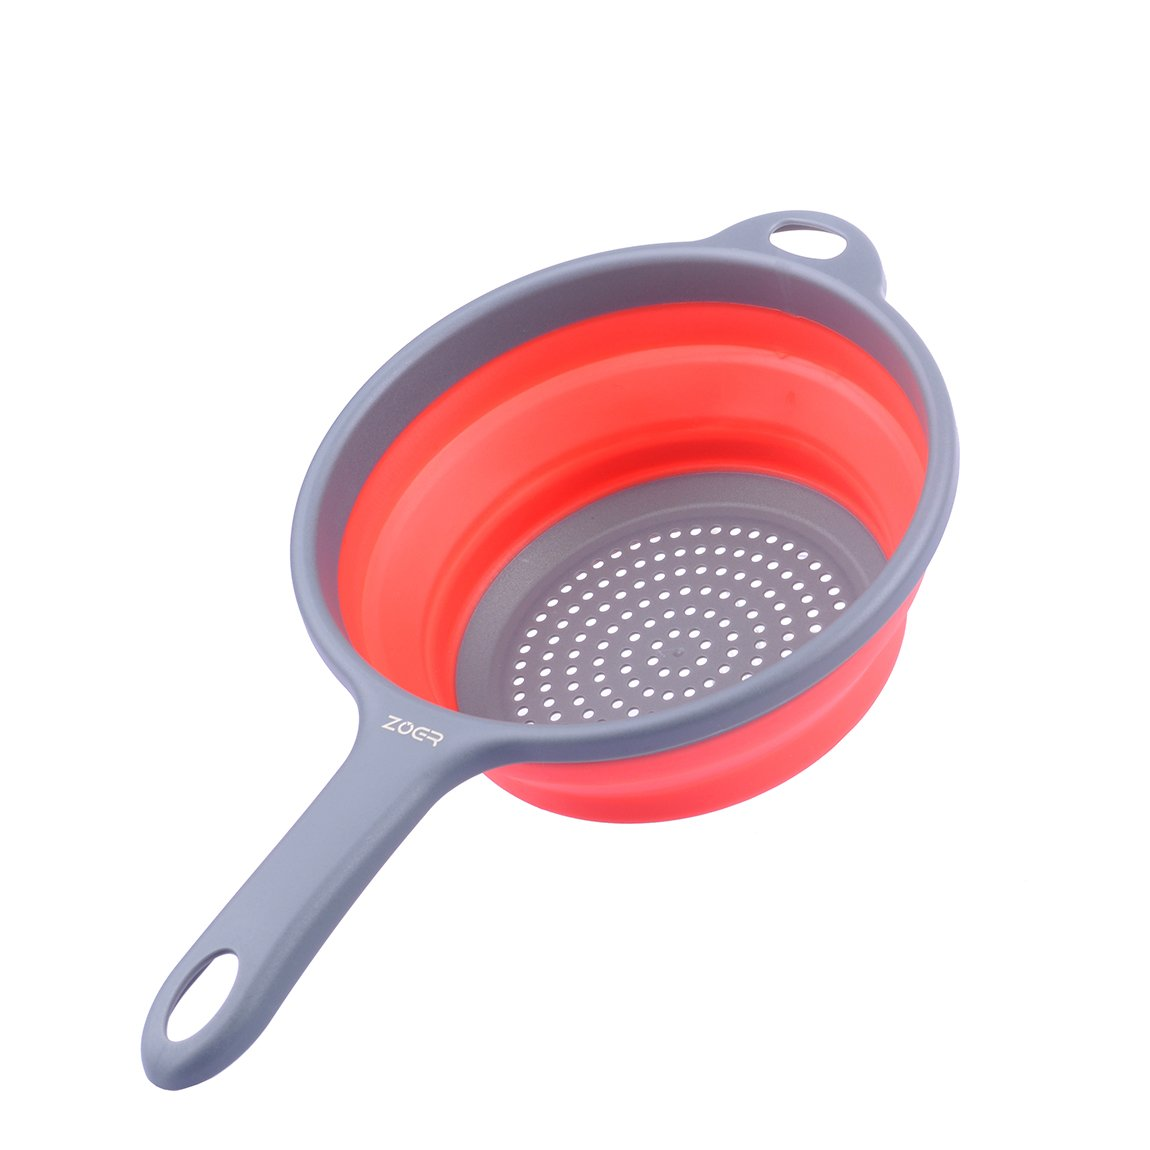 ZOER Kitchen Foldable Silicone Strainers,Collapsible Colanders with Handles,Space-Saver Folding Strainers Colander,Capacity of 2 quart (Red)